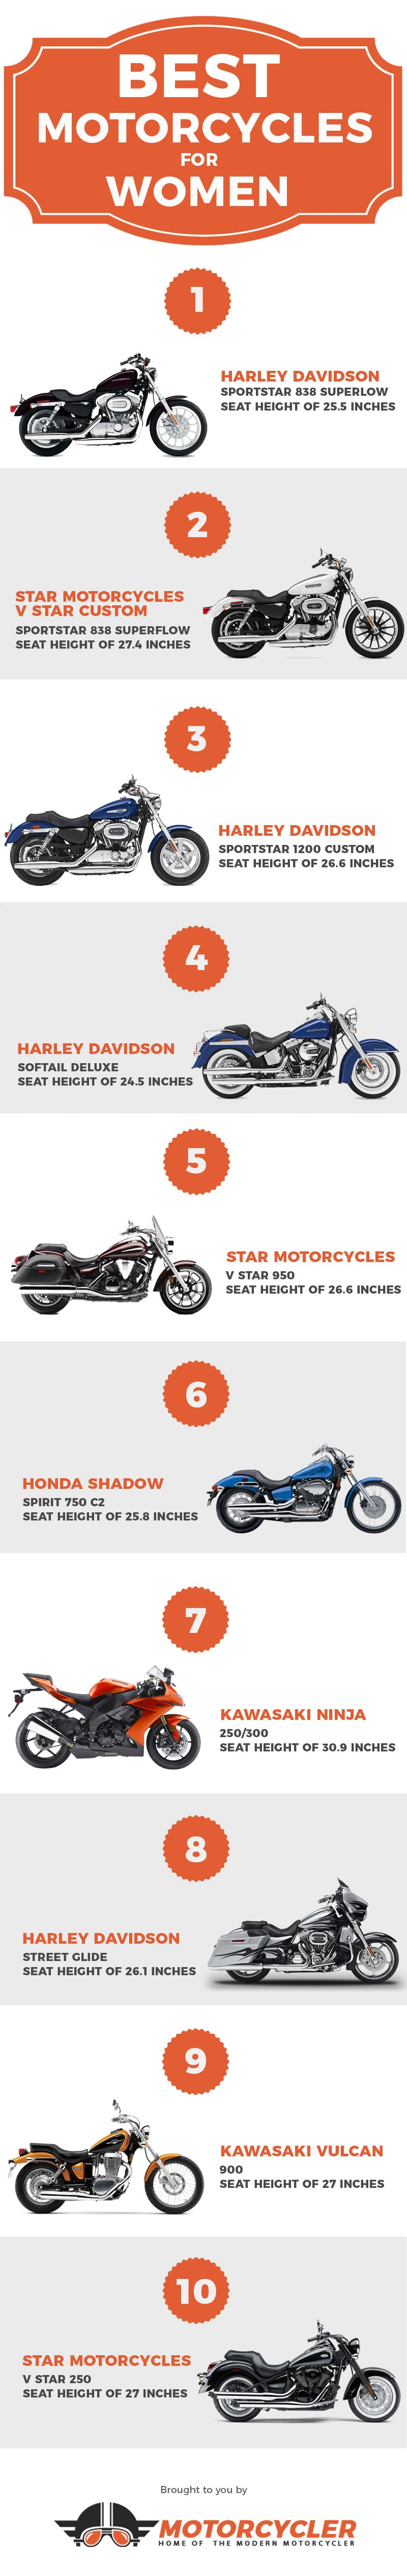 Best Motorcycles For Women